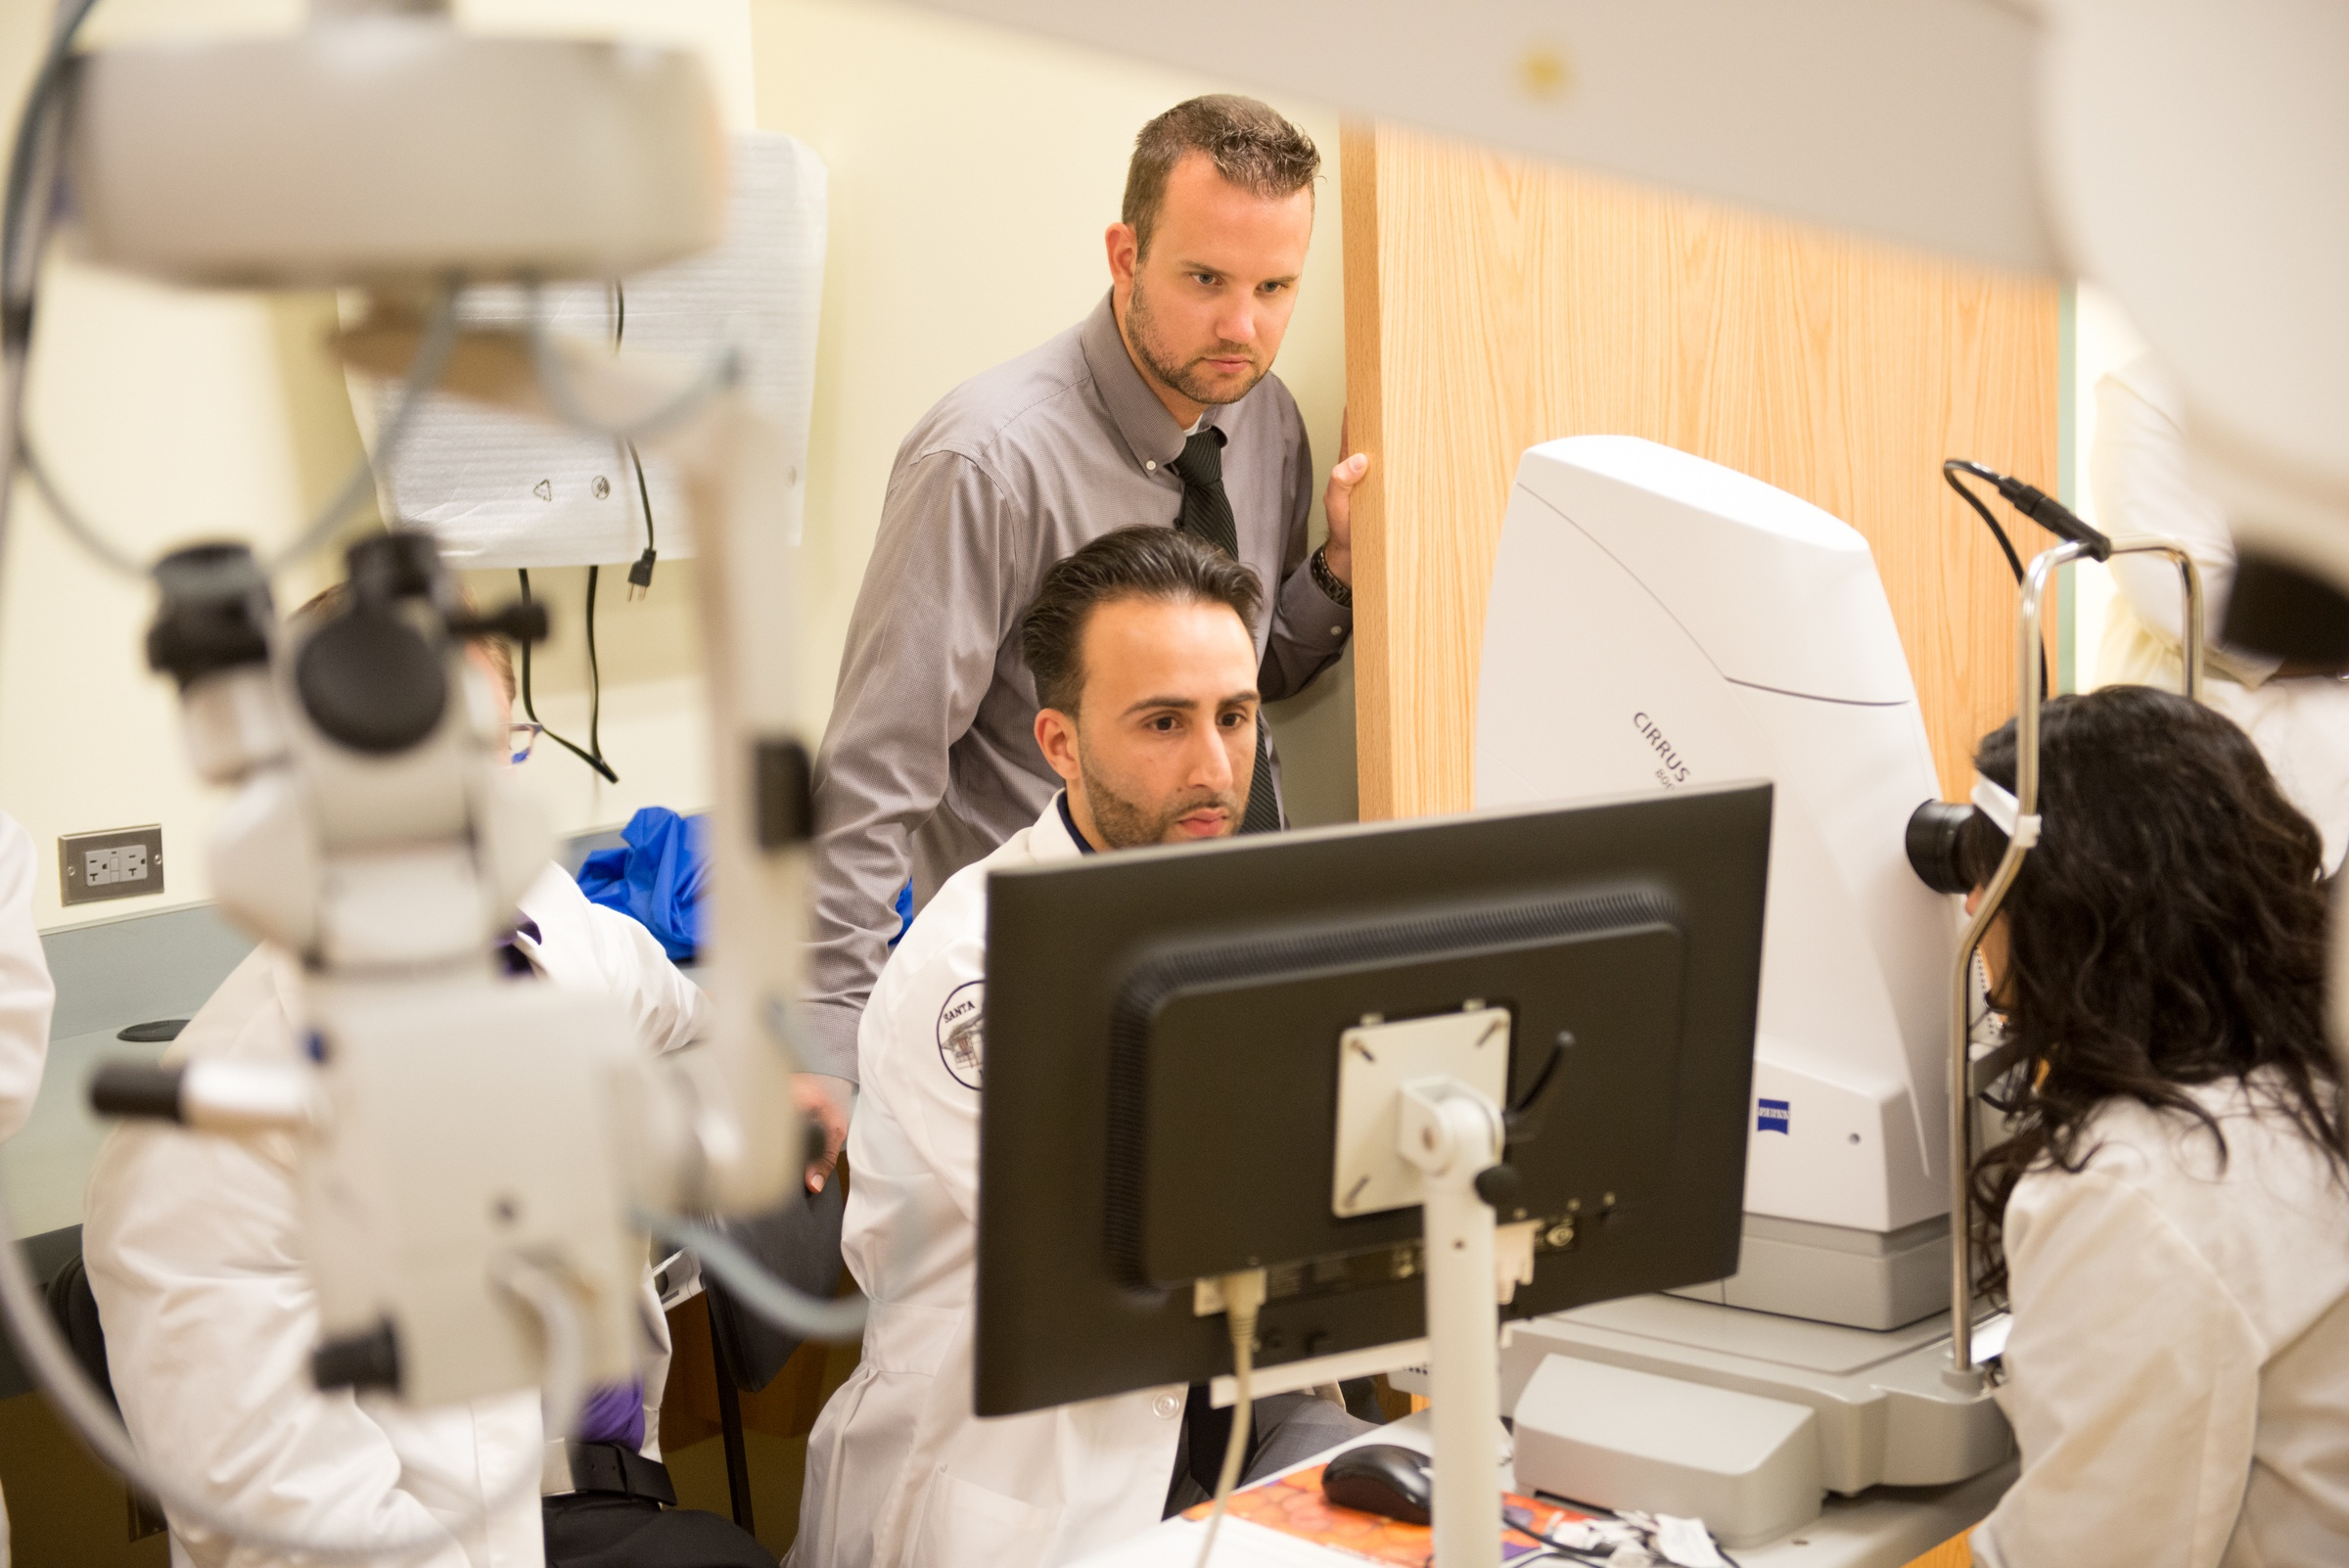 Students and faculty at the University of the Incarnate Word Rosenberg School of Optometry's Bowden Eye Care and Health Center review optical coherence tomography results.